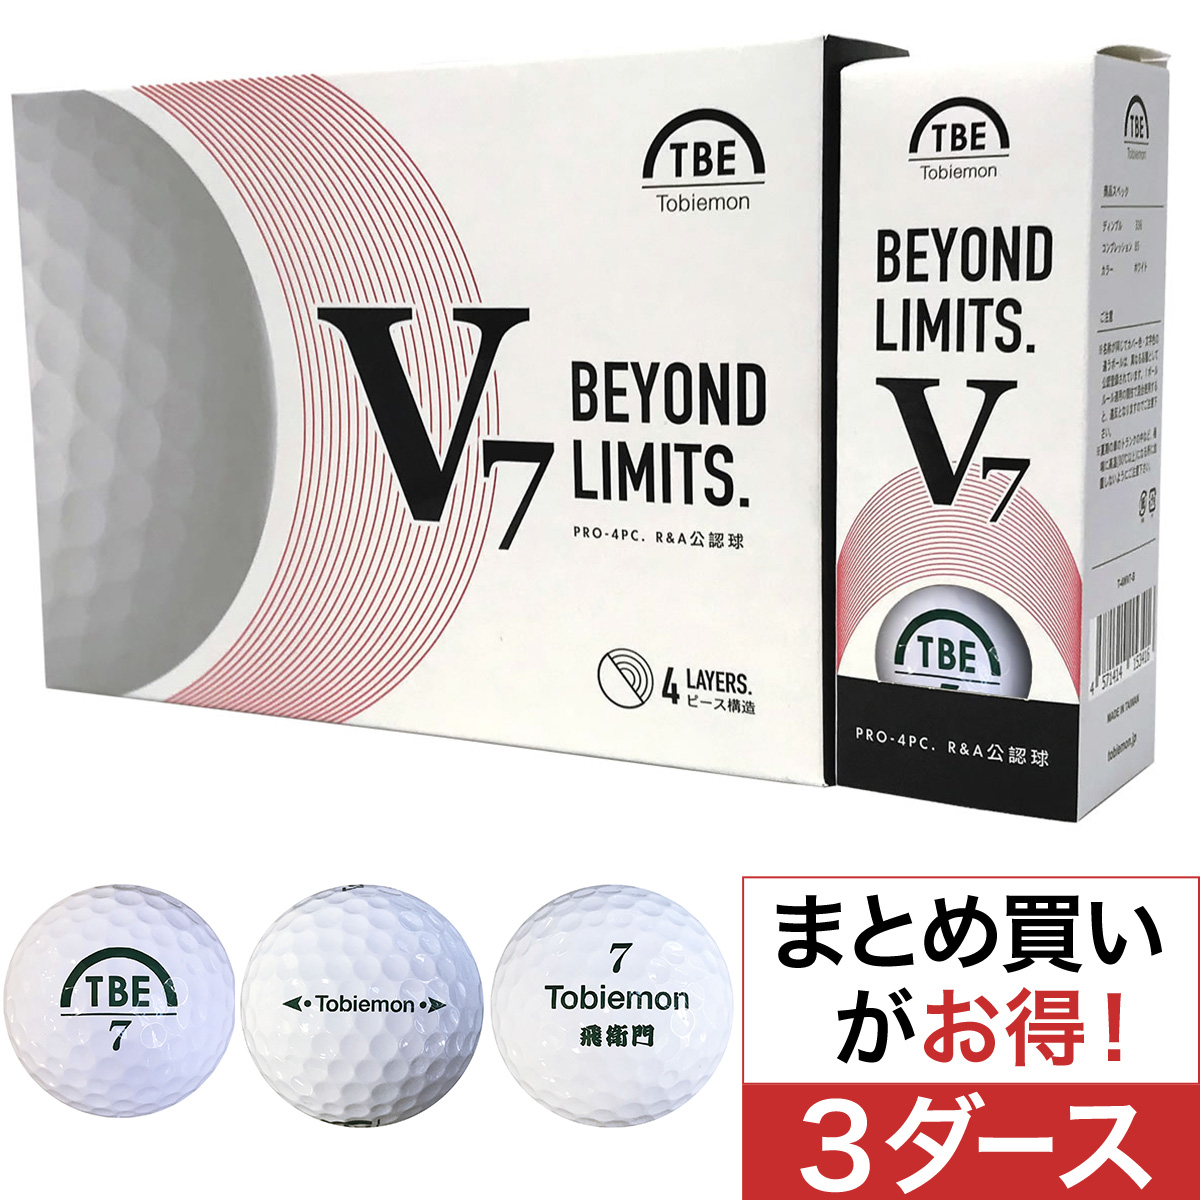 BEYOND LIMITS V7 ボール 3ダースセット